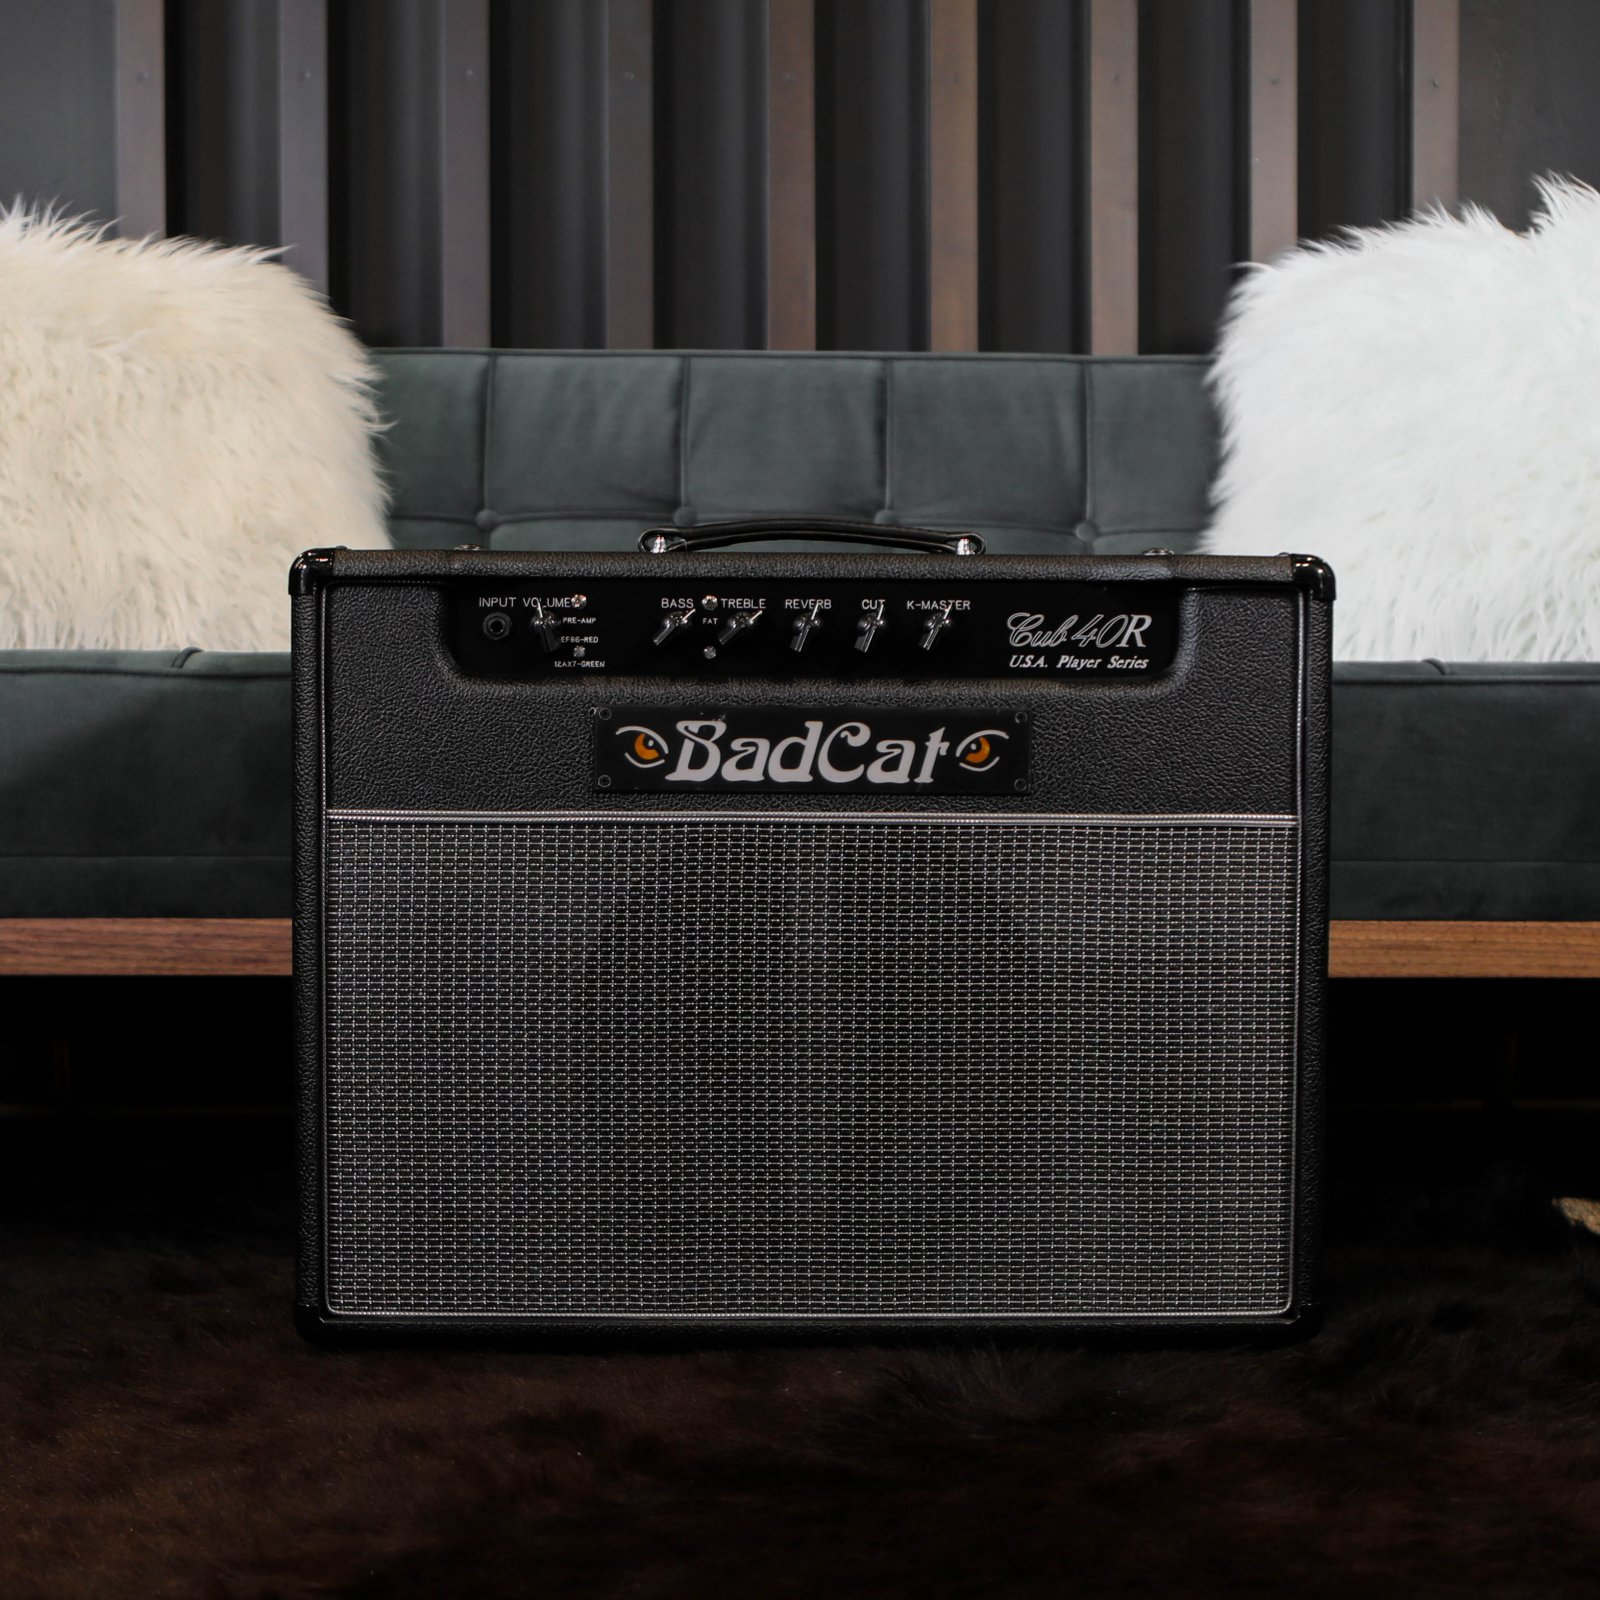 Bad Cat USA Player Series Cub 40R 40w 1x12 Combo Amplifier